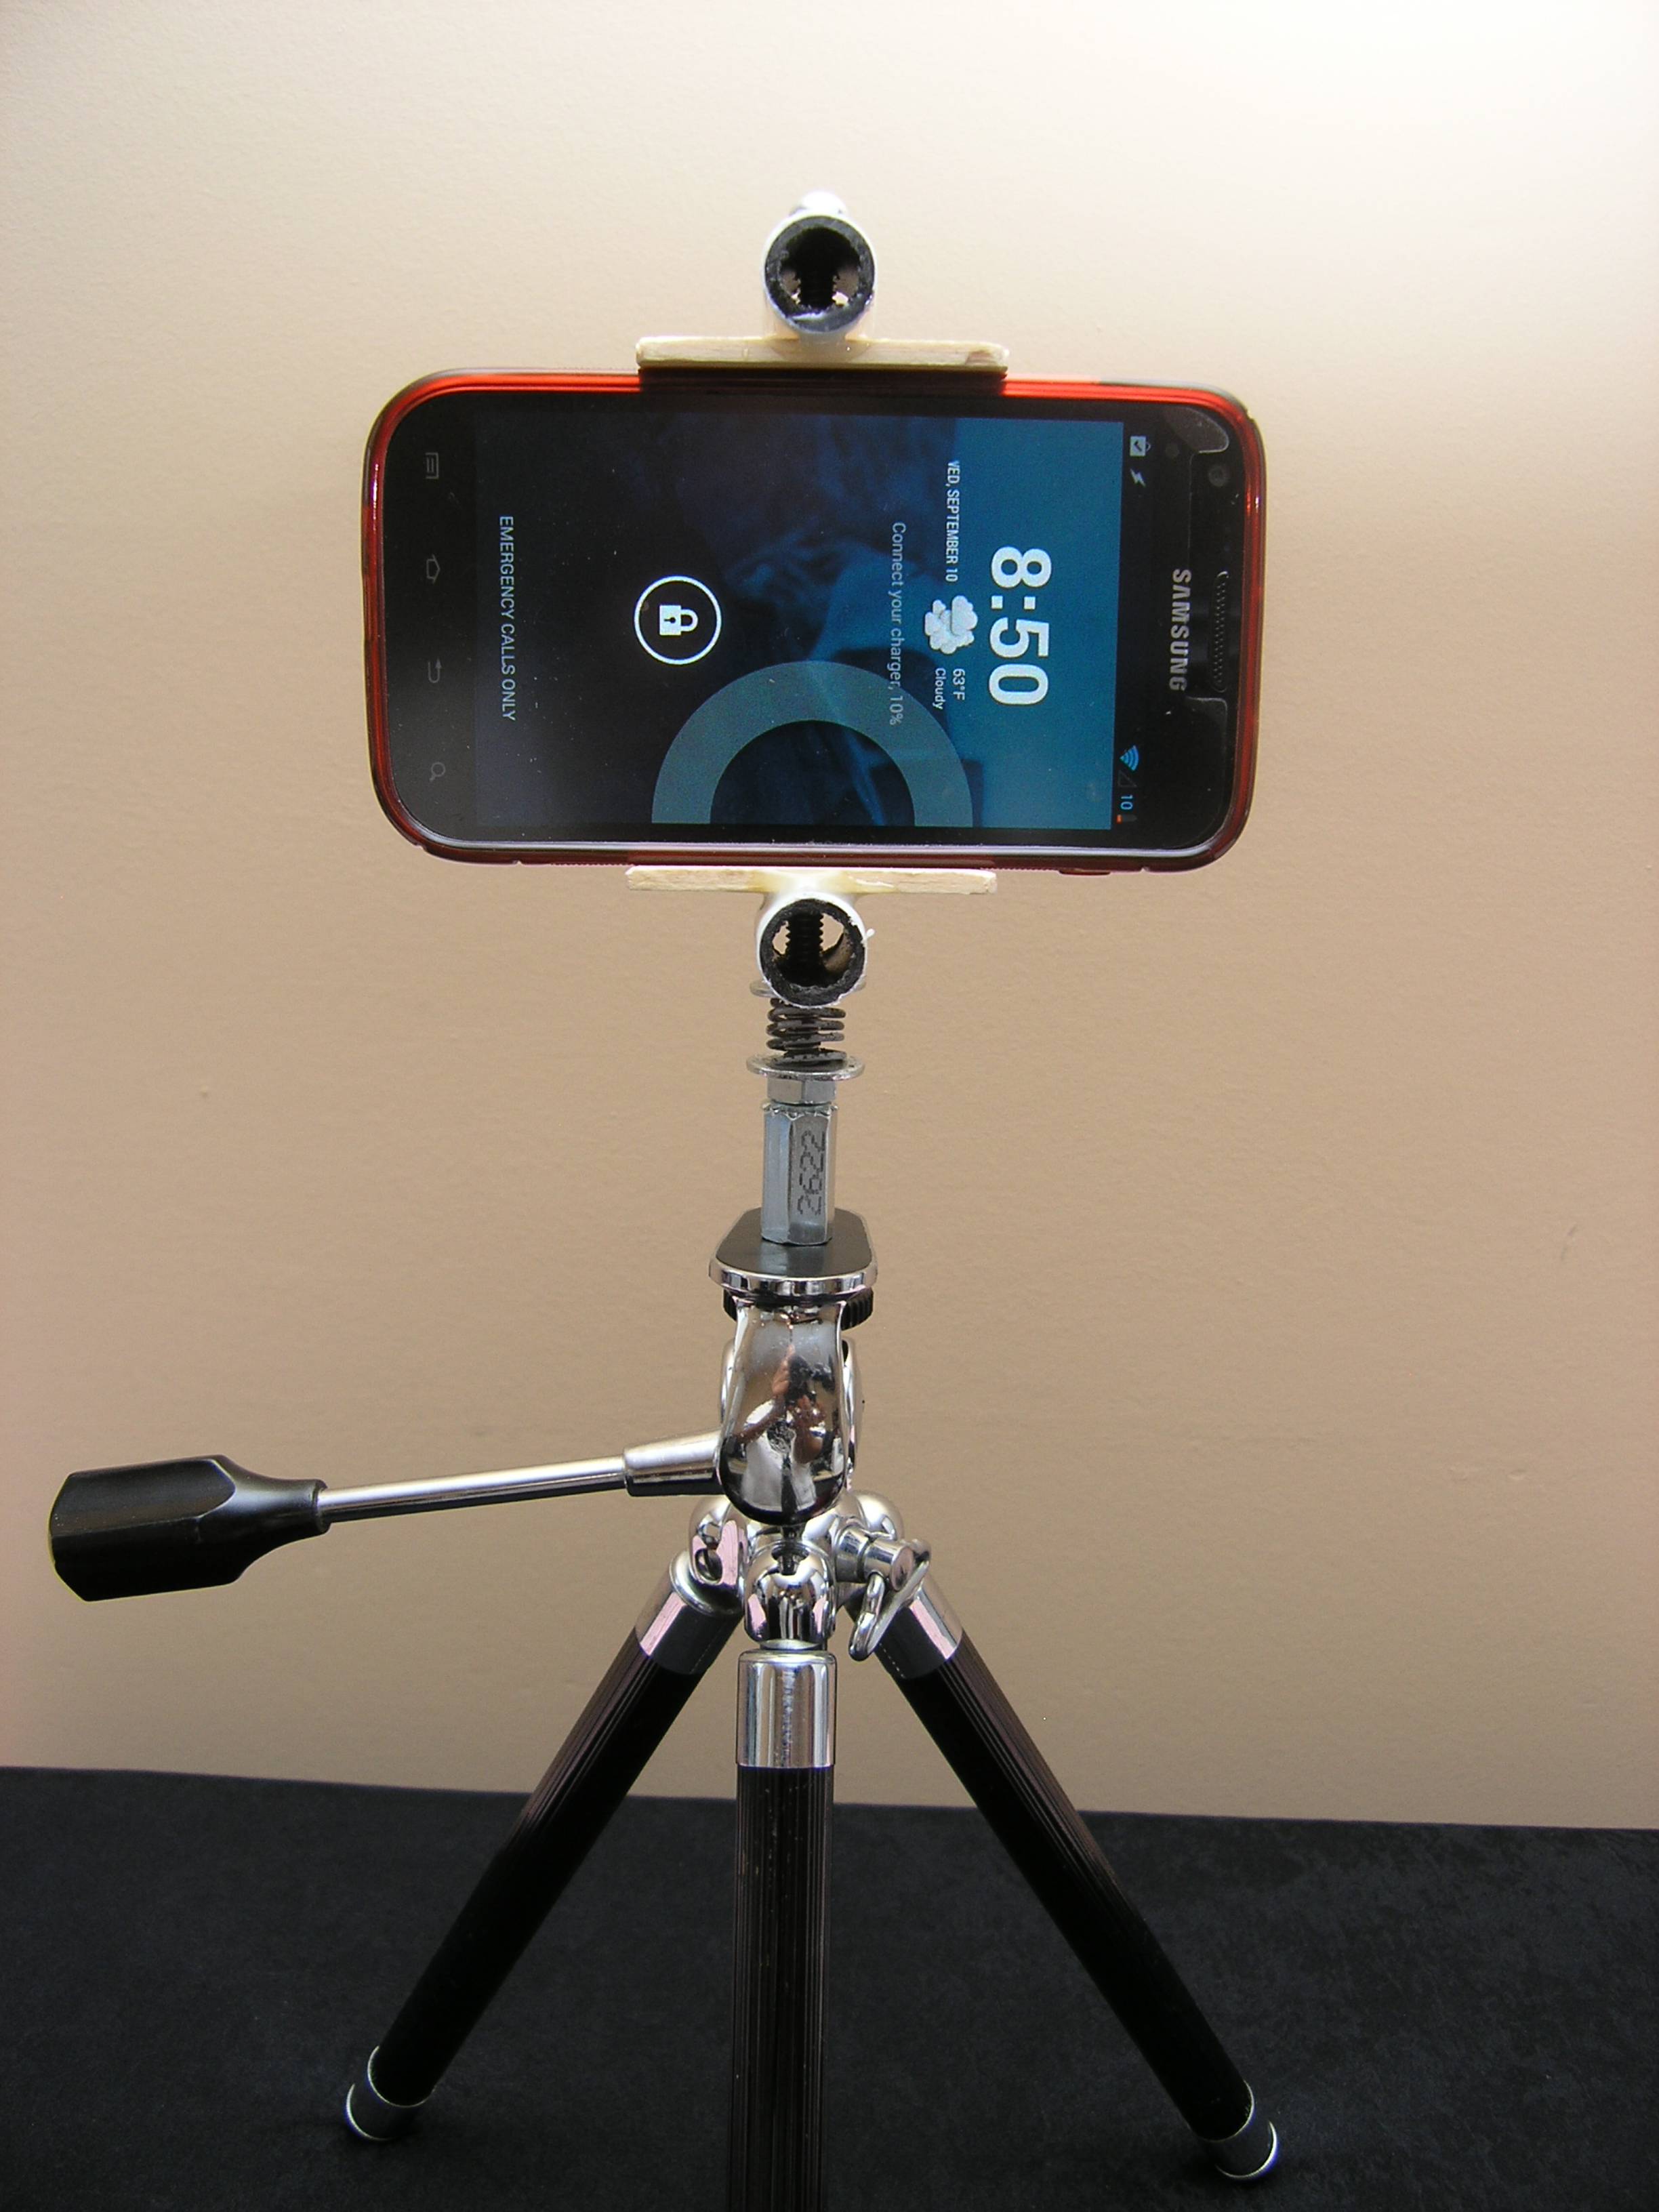 diy iphone tripod diy how to make your own smartphone tripod mount iphone 3382